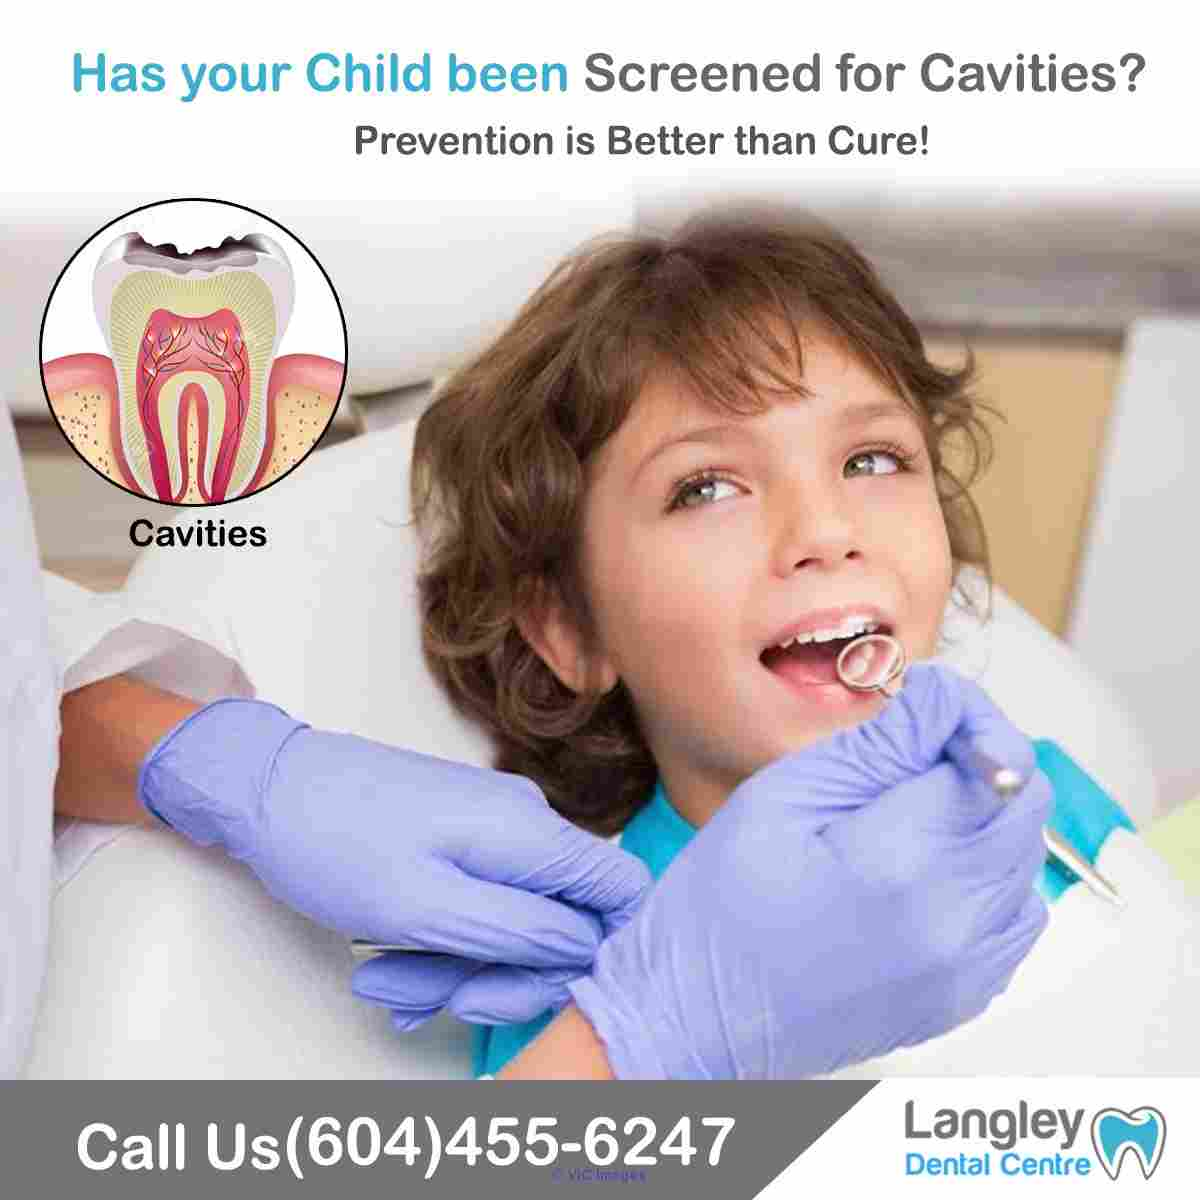 Root Canal Dentist - Langley BC Dentist - Dentist Langley BC calgary